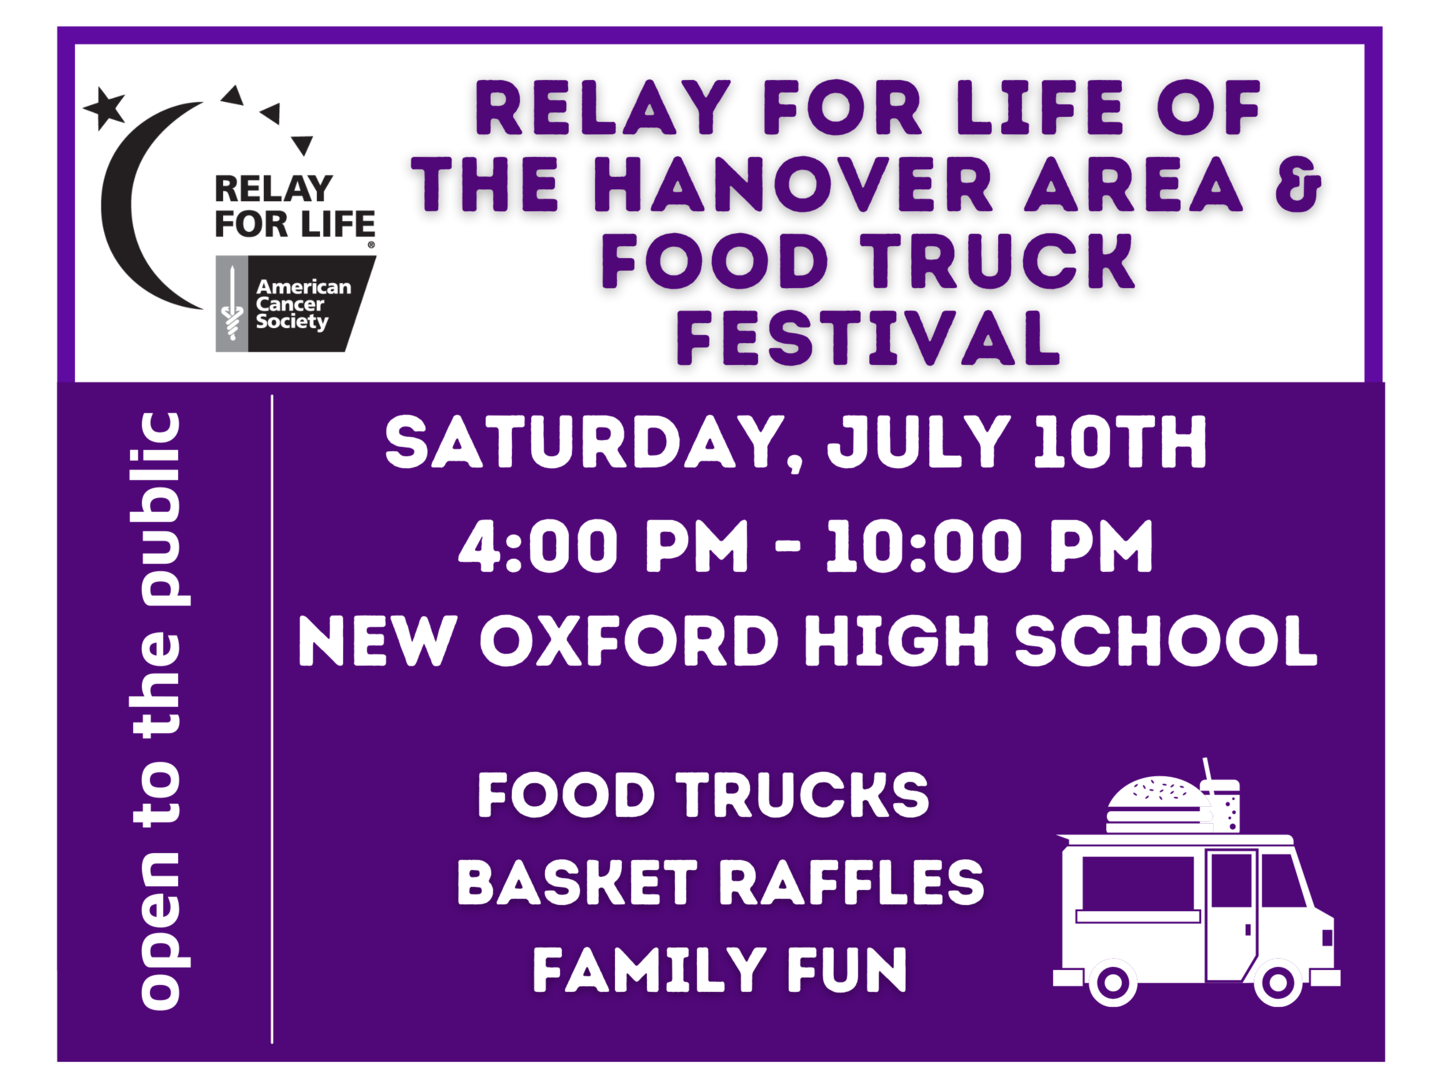 Relay For Life of the Hanover Area & Food Truck Festival